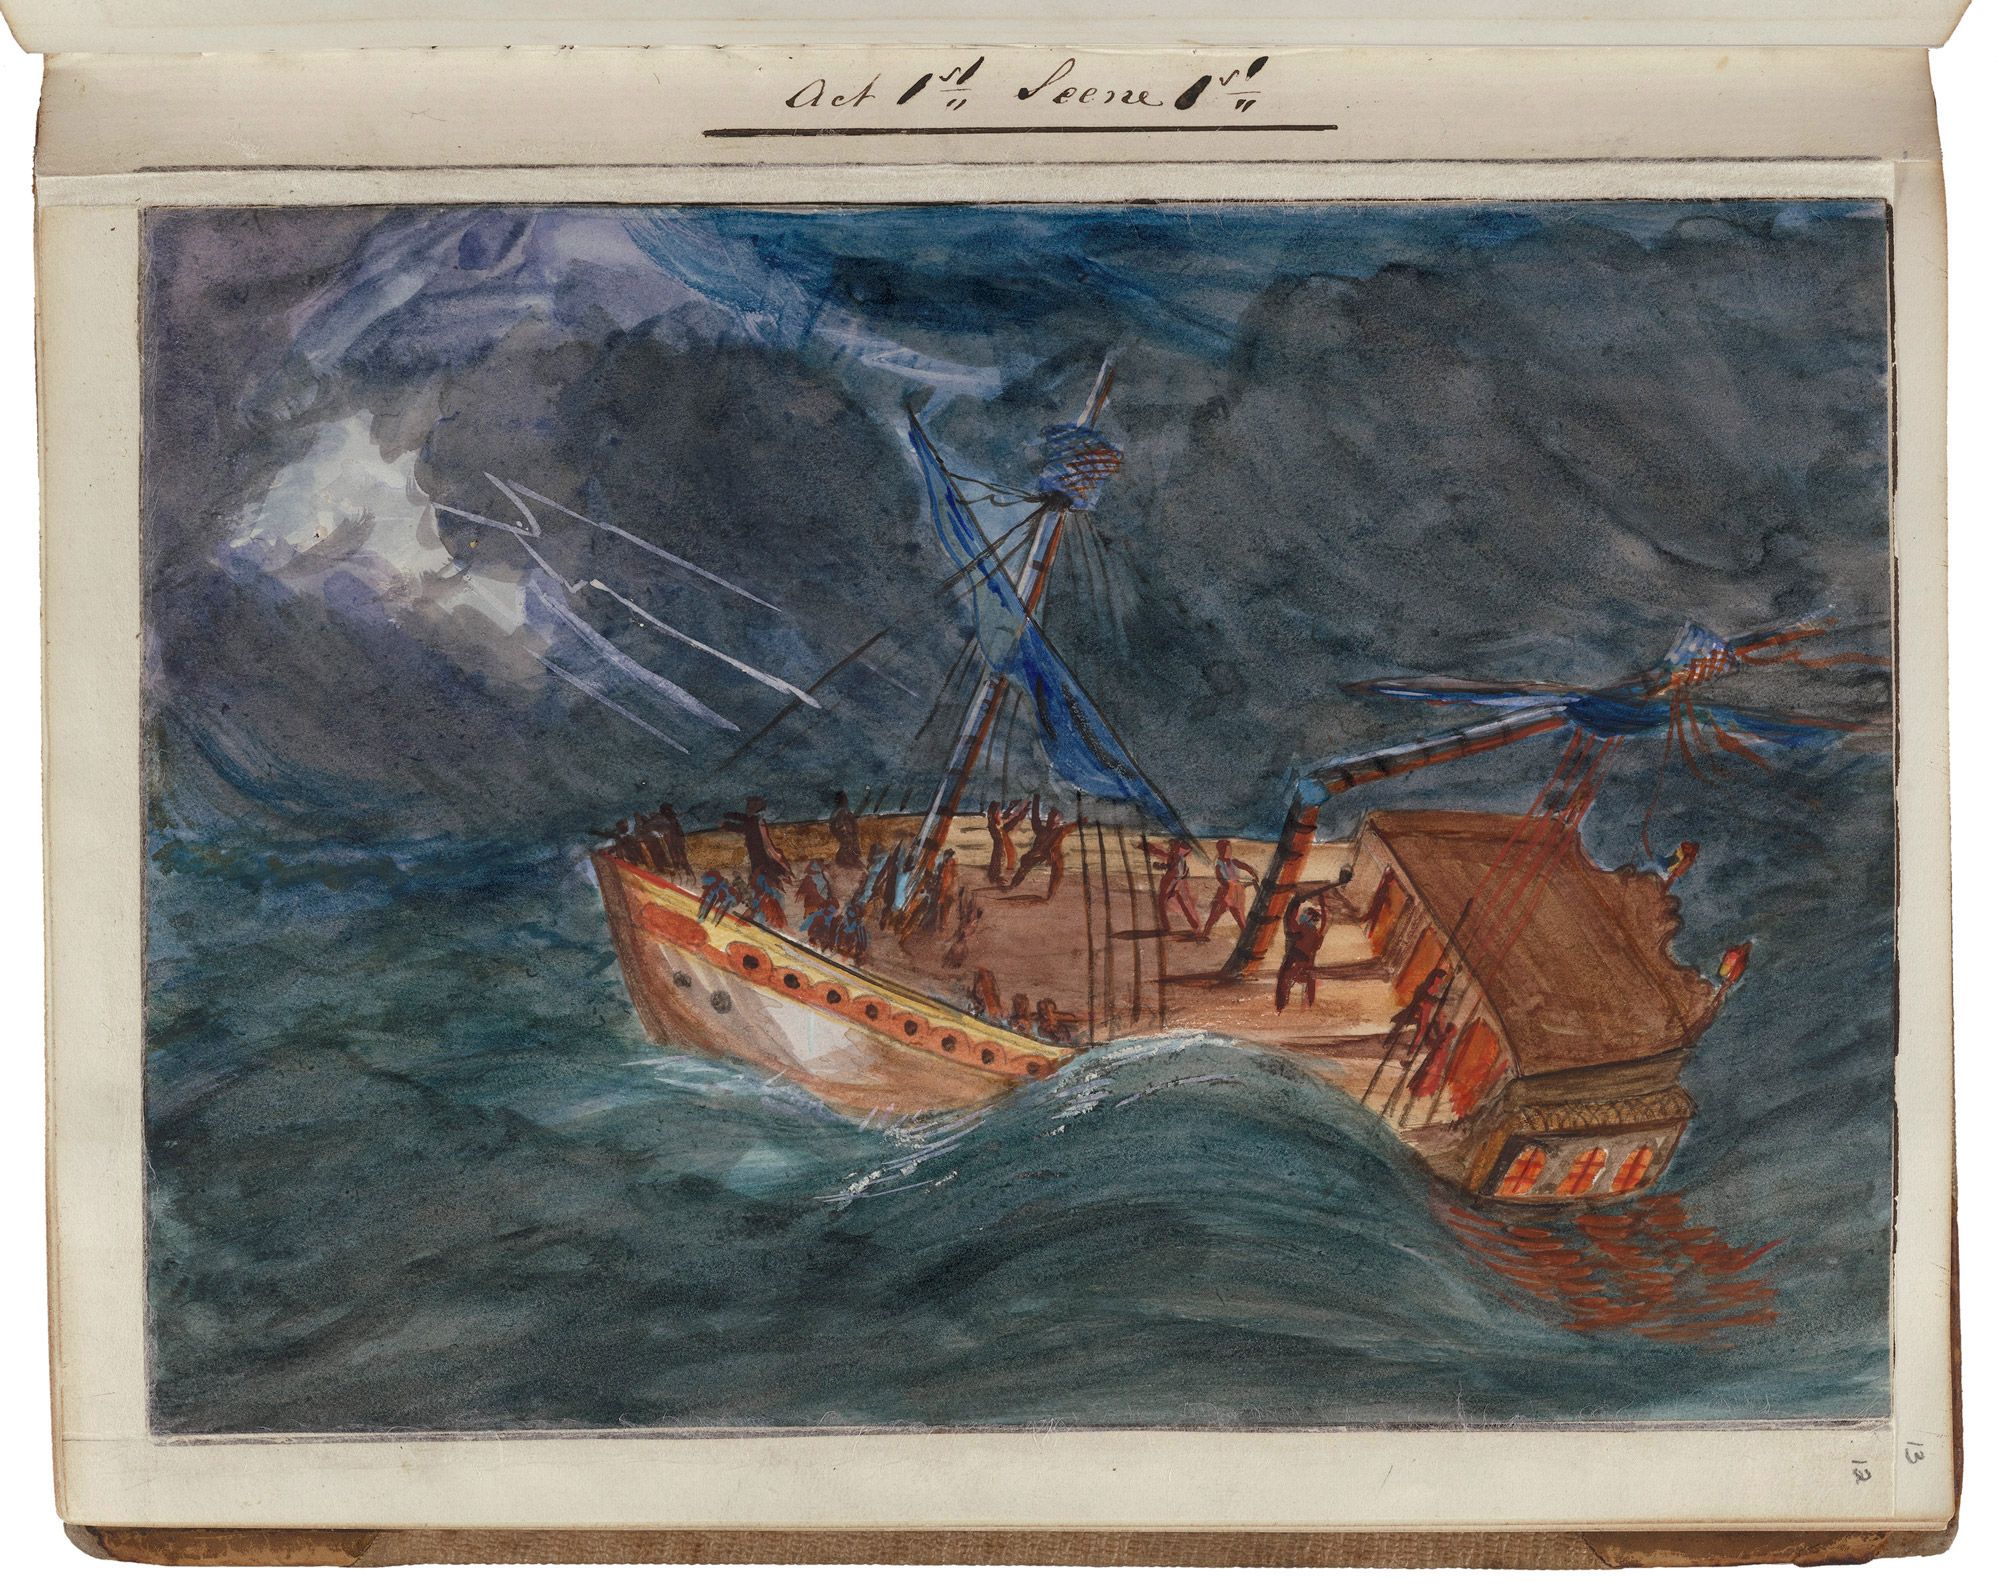 Set Designs for Charles Kean's 1857 production of The Tempest which required over 140 stage hands to move the elaborate scenery